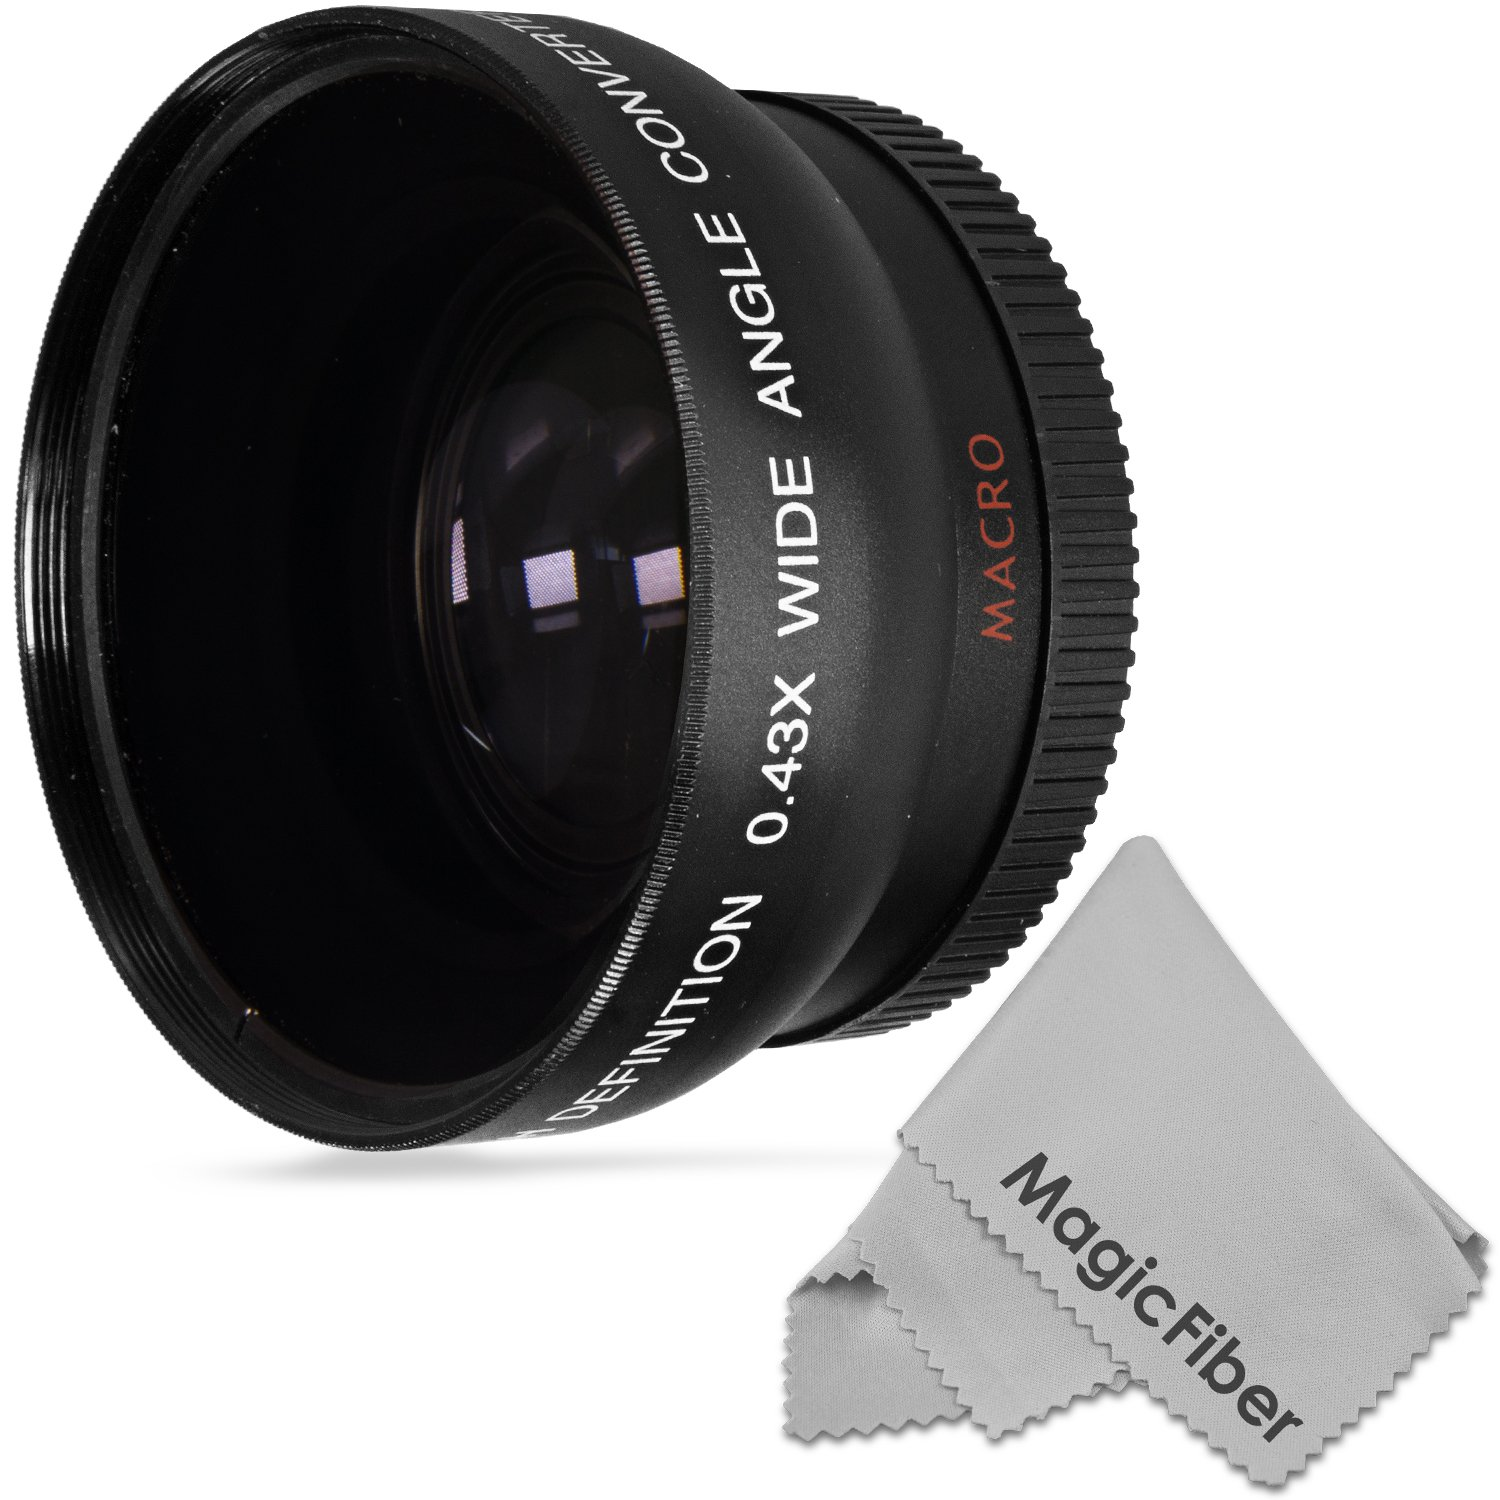 Panoramic Lens Nikon Lens With Macro For Nikon